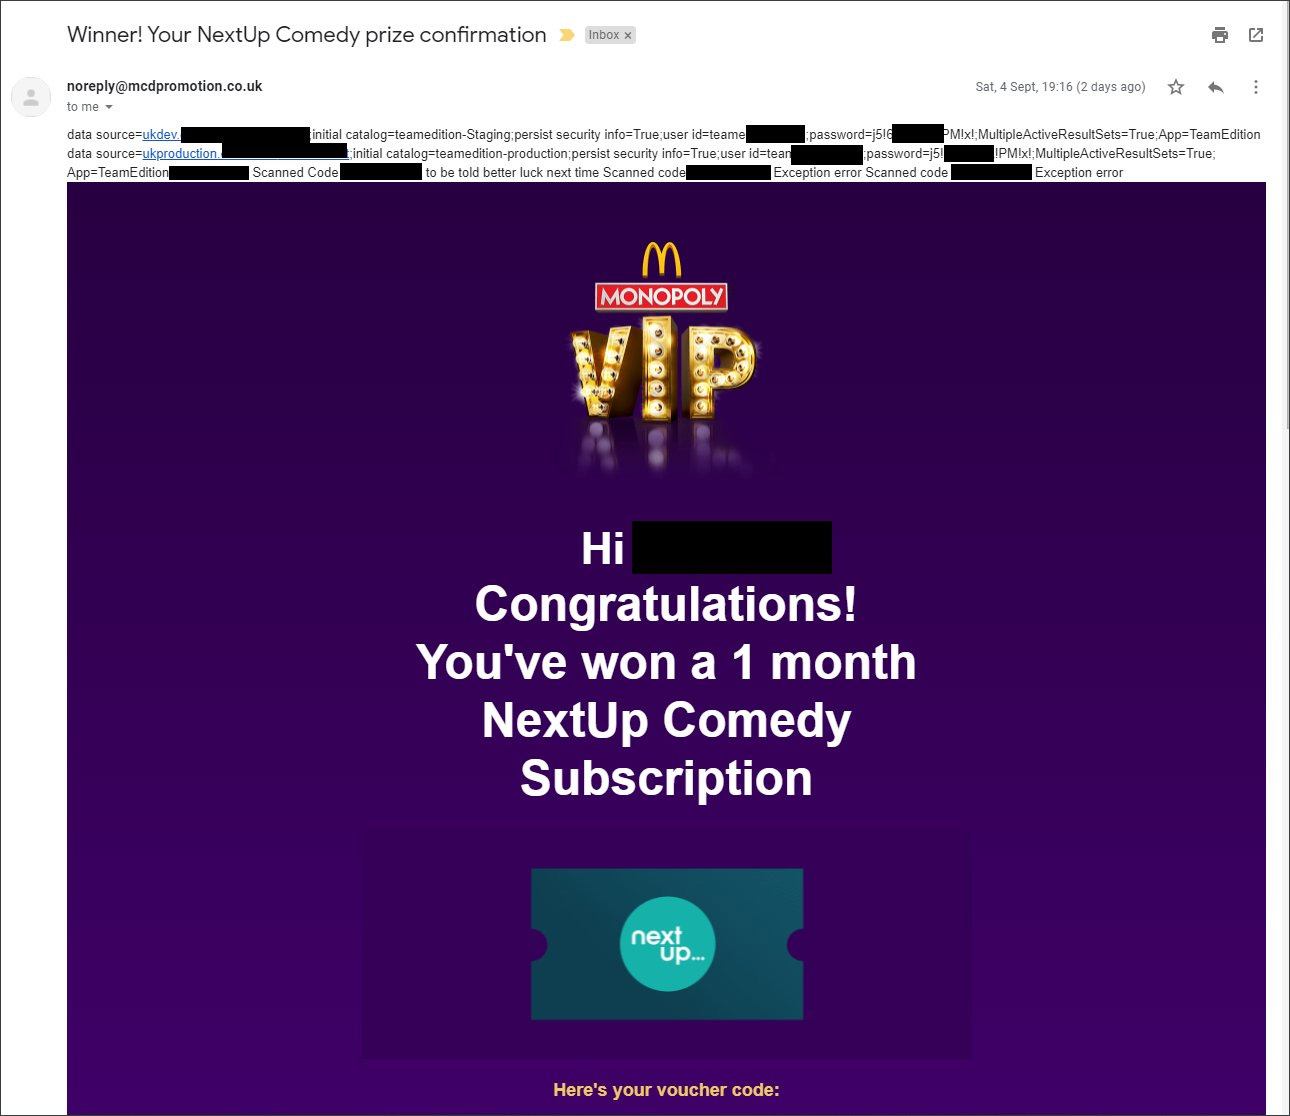 McDonalds Monopoly VIP prize email with database credentials